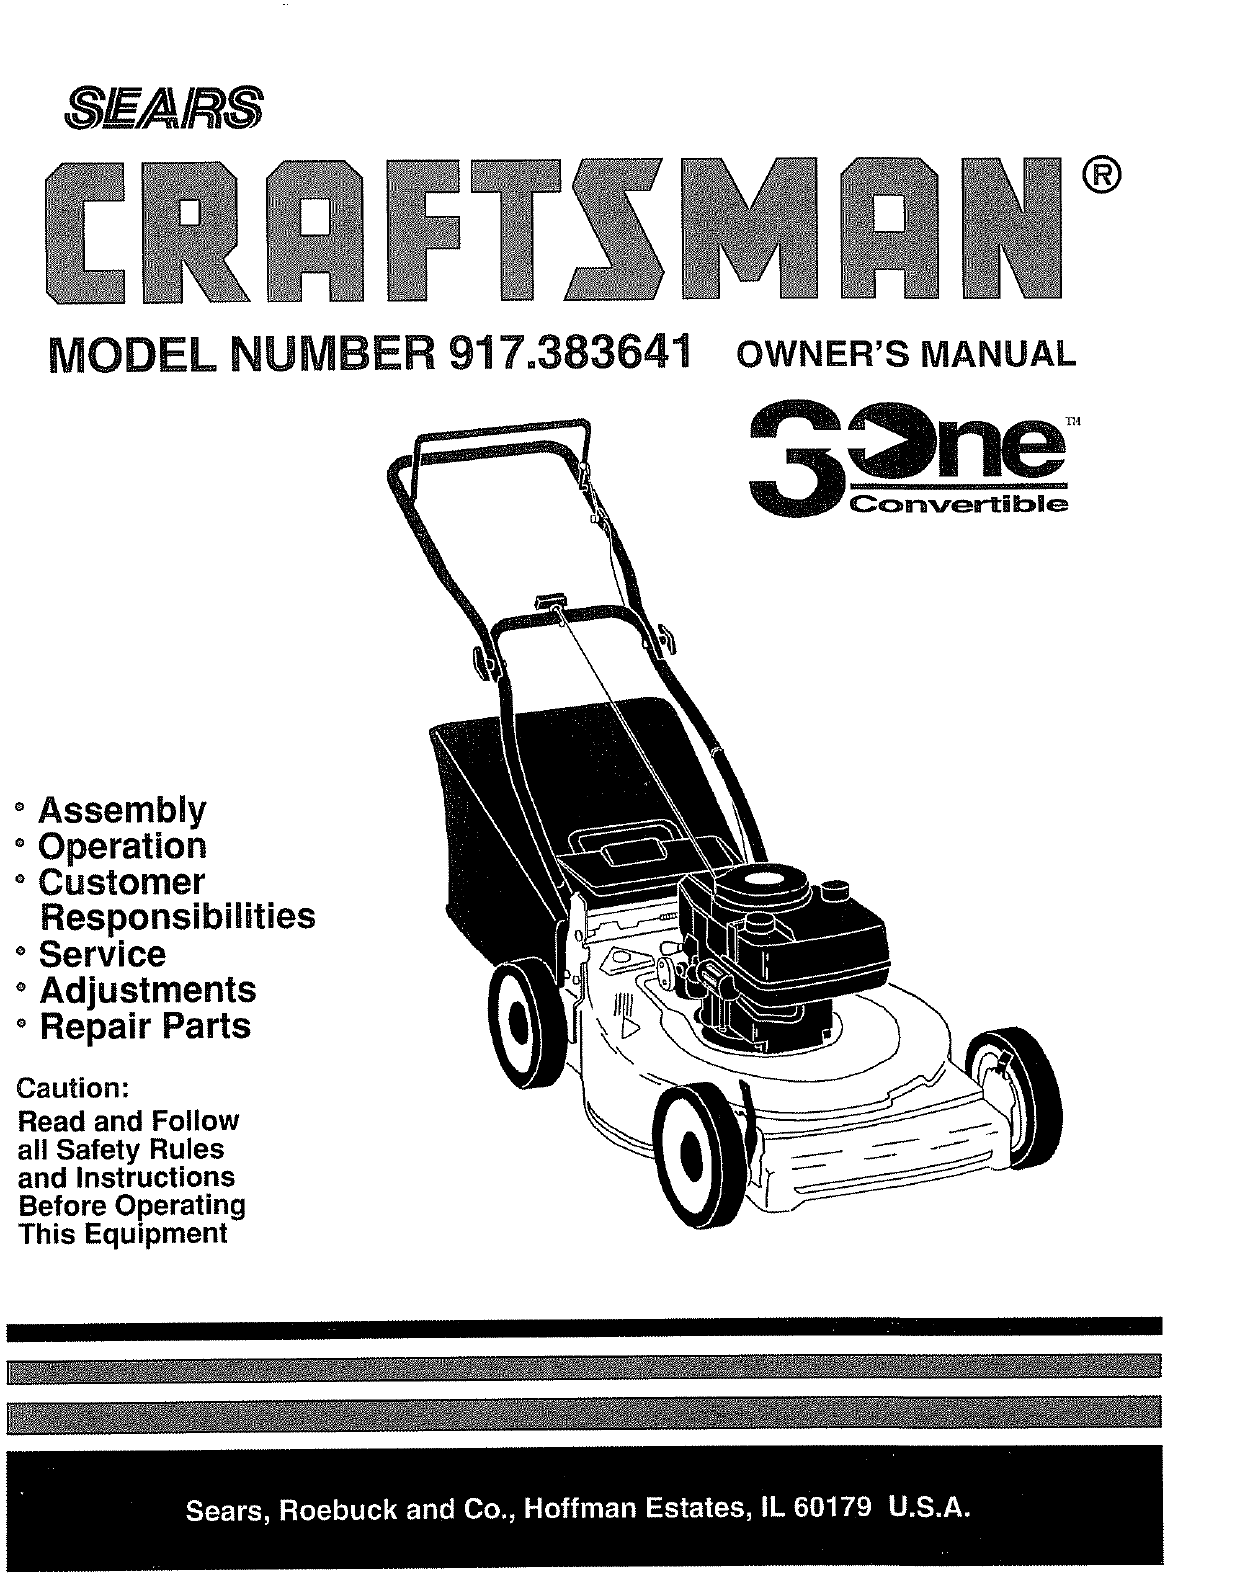 Craftsman 917383641 User Manual Lawn Mower Manuals And Guides L0807083 Self Propelled Model Number